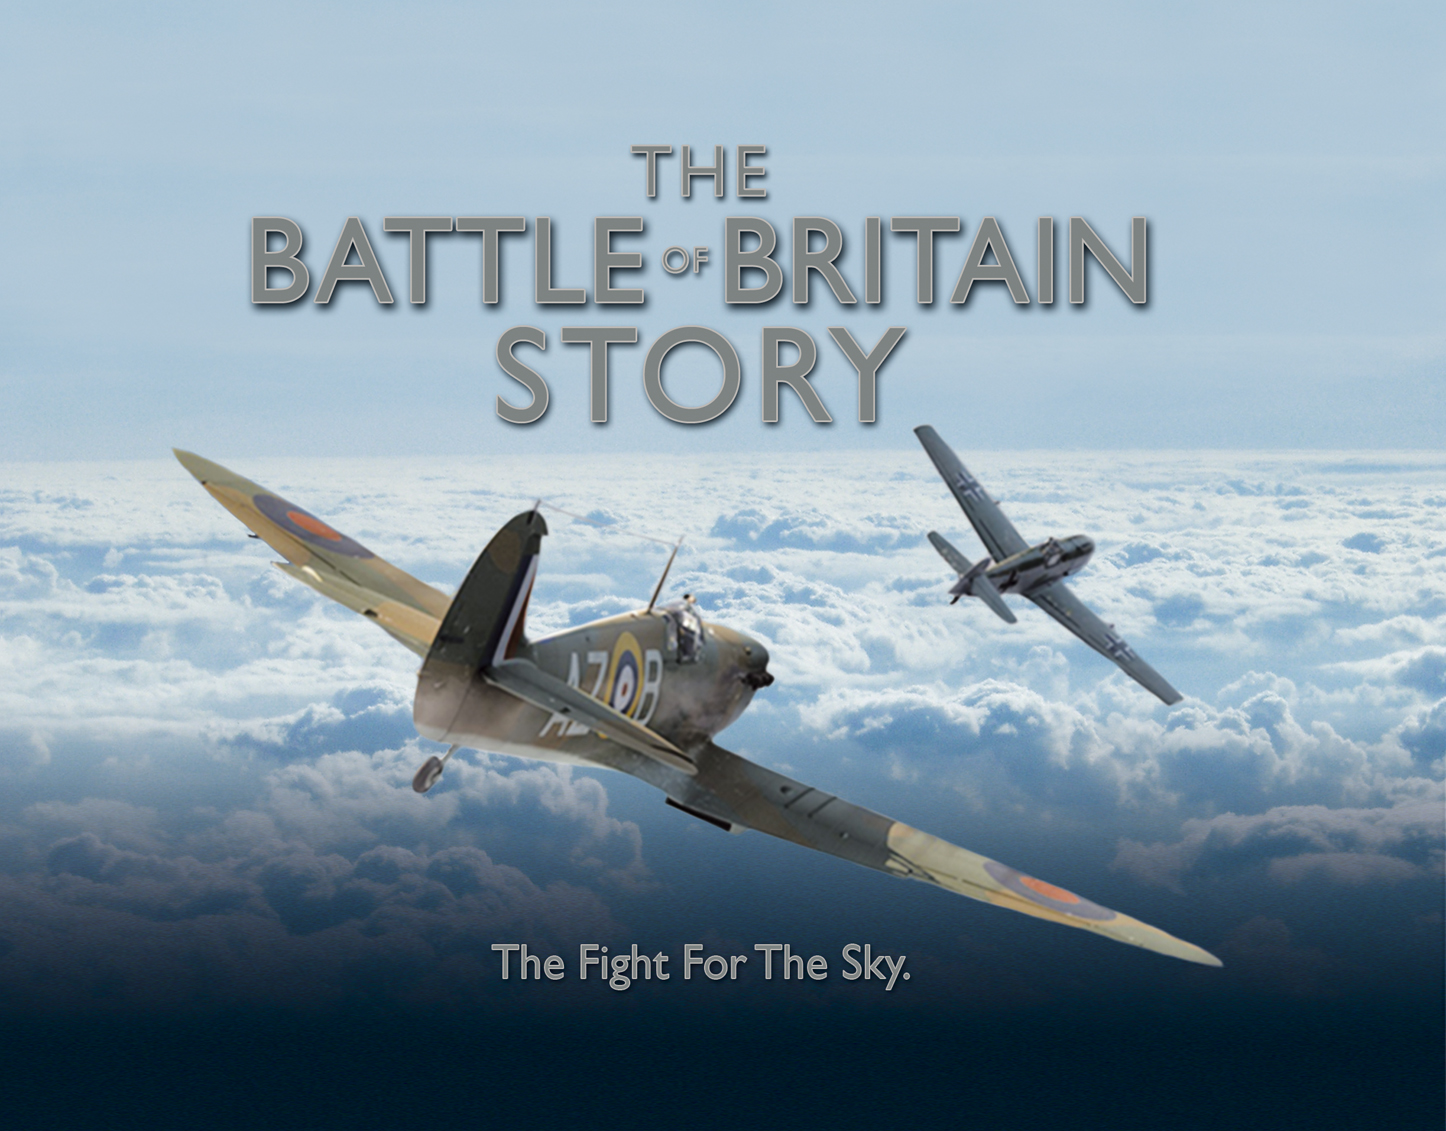 The Battle of Britain Story: Fight For The Sky